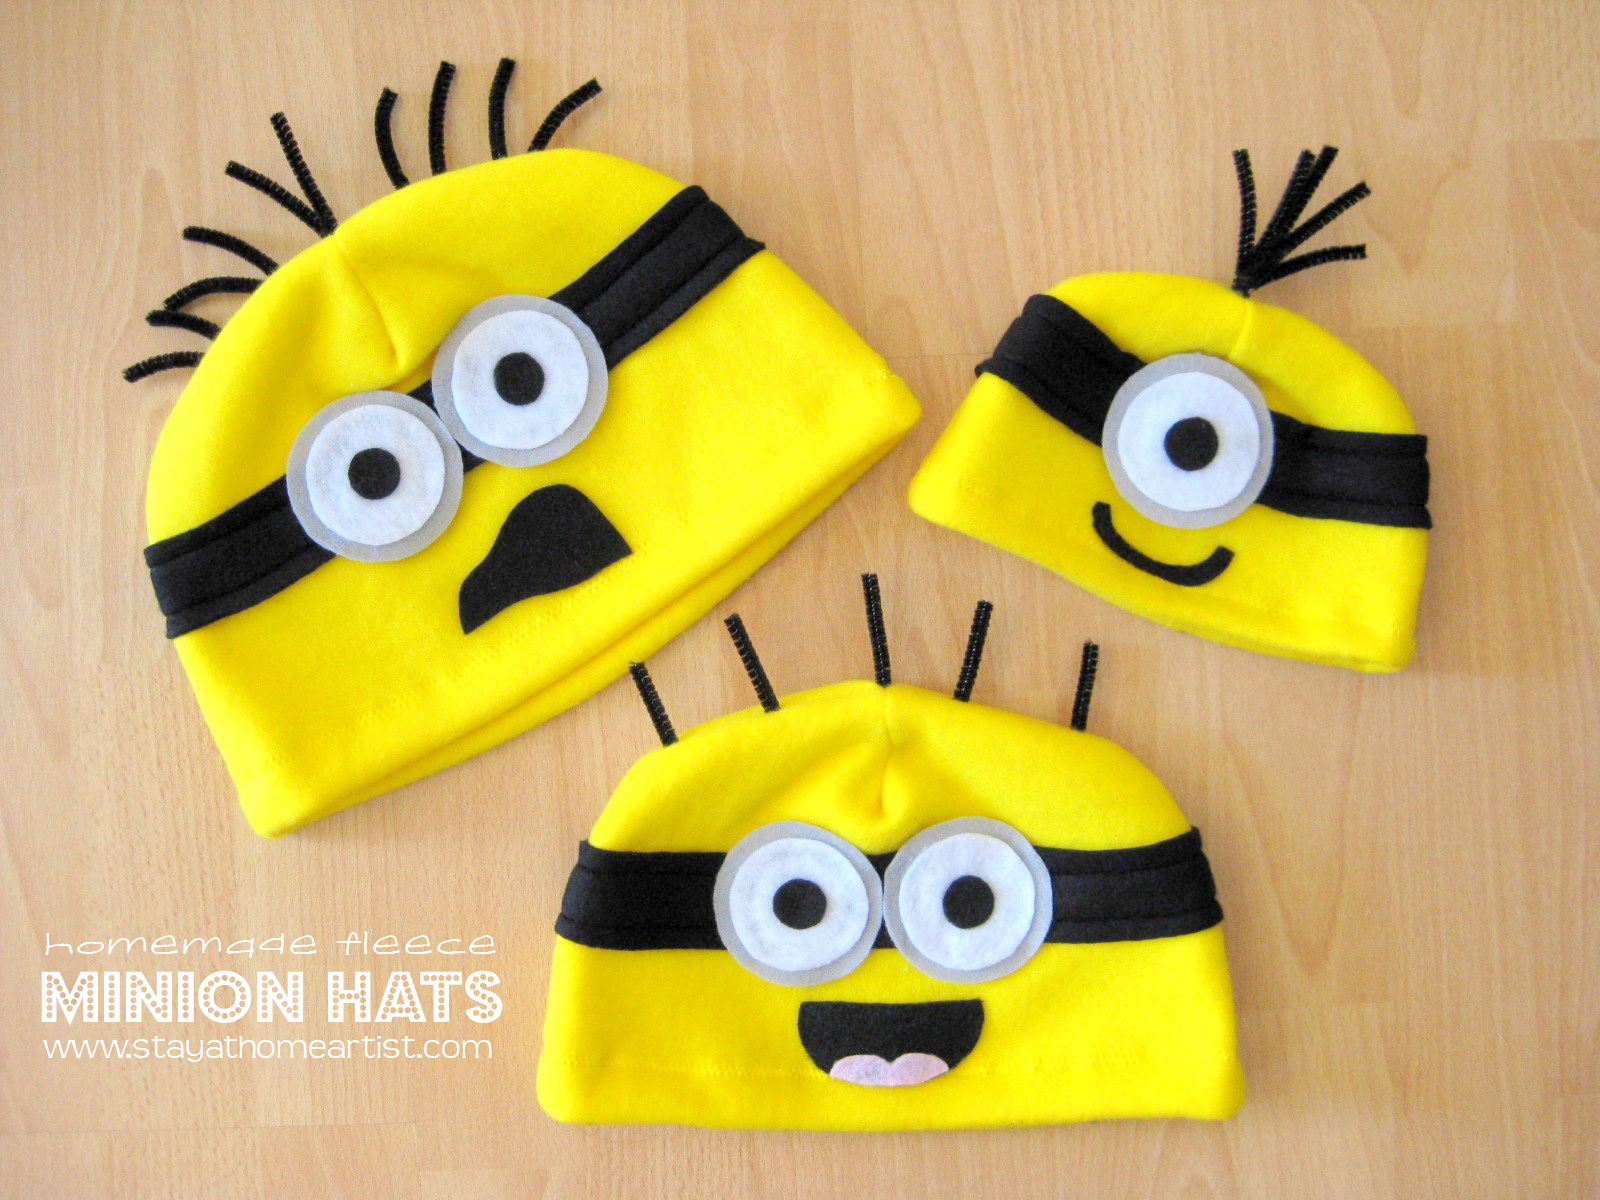 I ... & stayathomeartist.com: homemade fleece minion hats...